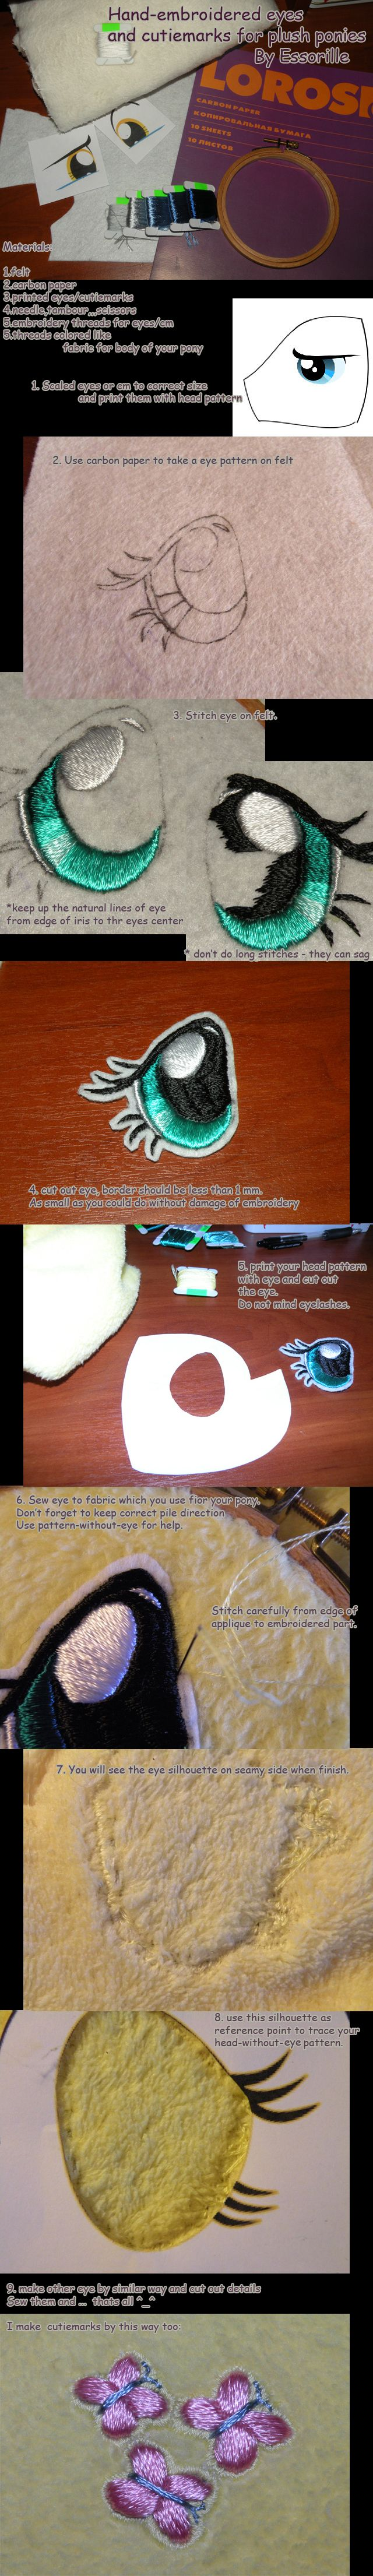 Handembroidered Plush Eyes Tutorial By *essorille , How To Embroider My  Little Pony Eyes, My Little Pony Plushie Tutorial , Animal Plushies, Softies